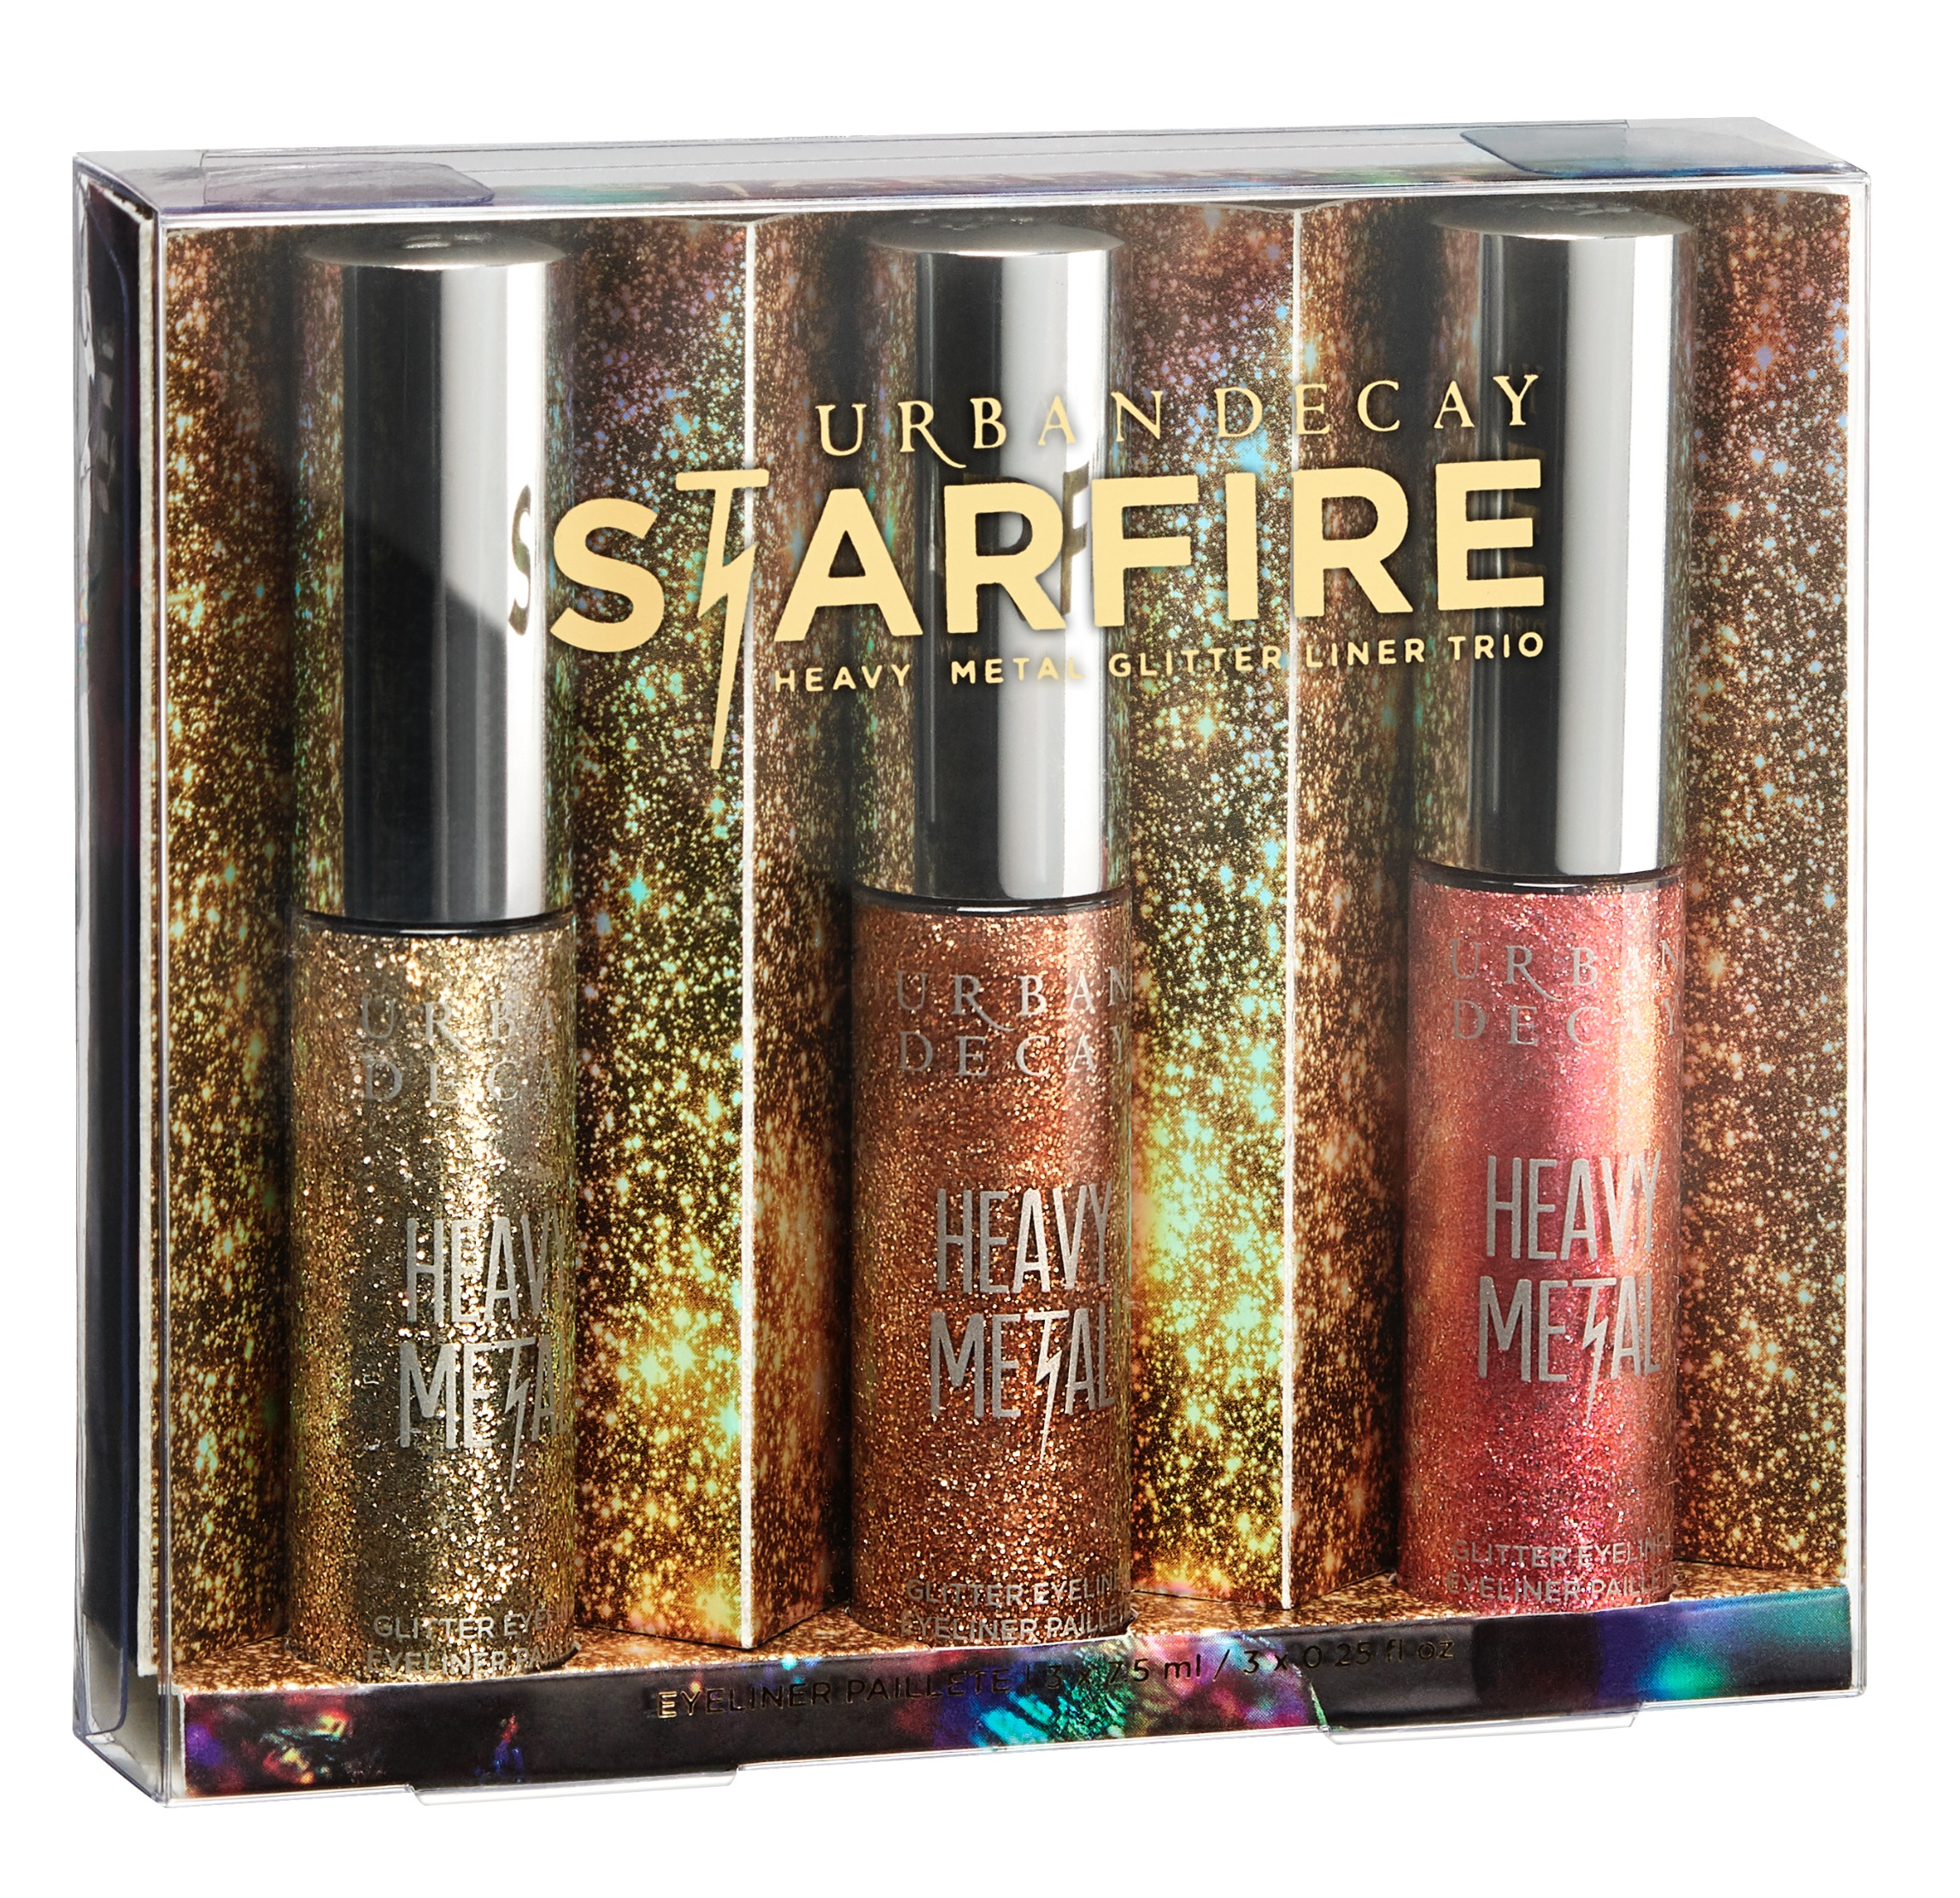 Starfire Heavy Metal Glitter Liner Trio ($64): Three amazing shades (including two new additions) in full-size vials — Midnight Cowboy (a beige and gold glitter), Starfire (copper glitter), and Volume (pink shimmer with peach shift).